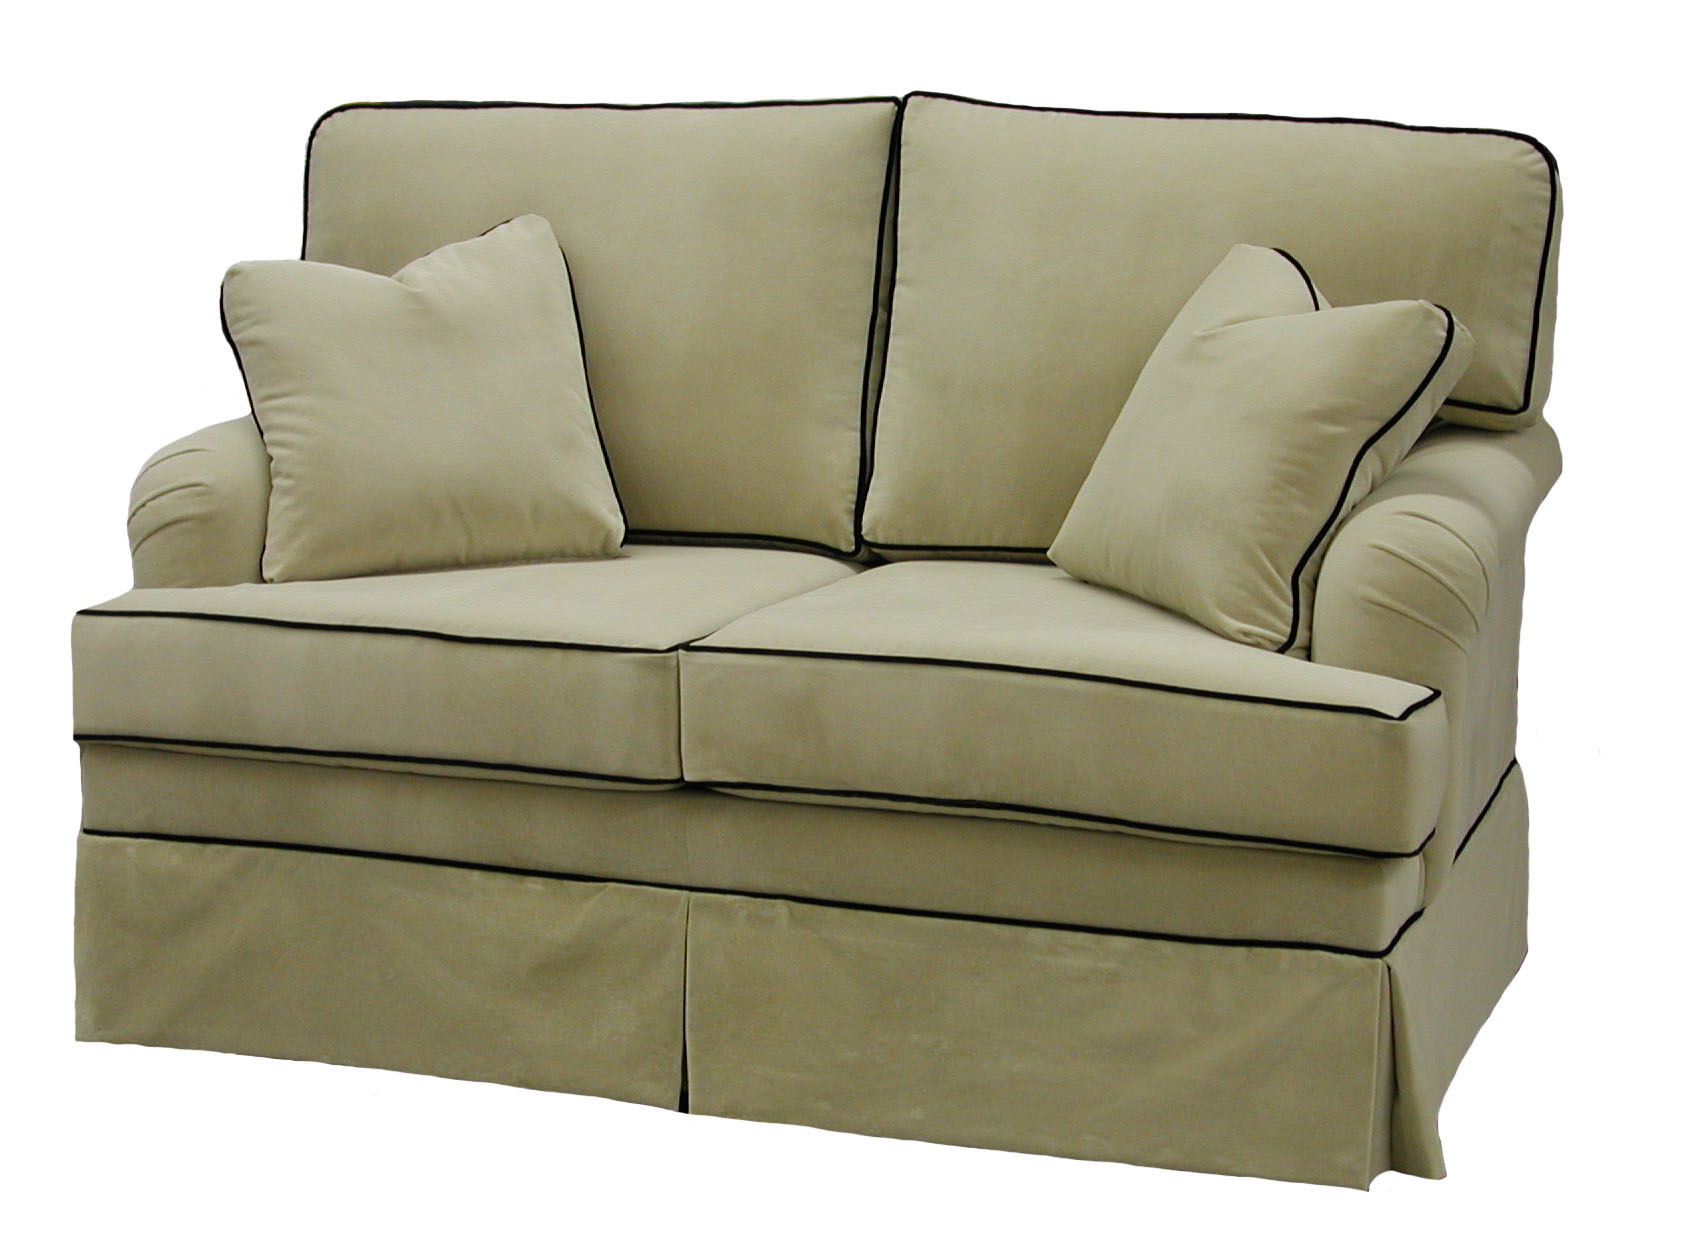 Quotes On Sofa English Full Sleeper Sofa Carolina Chair North Carolina Amercian